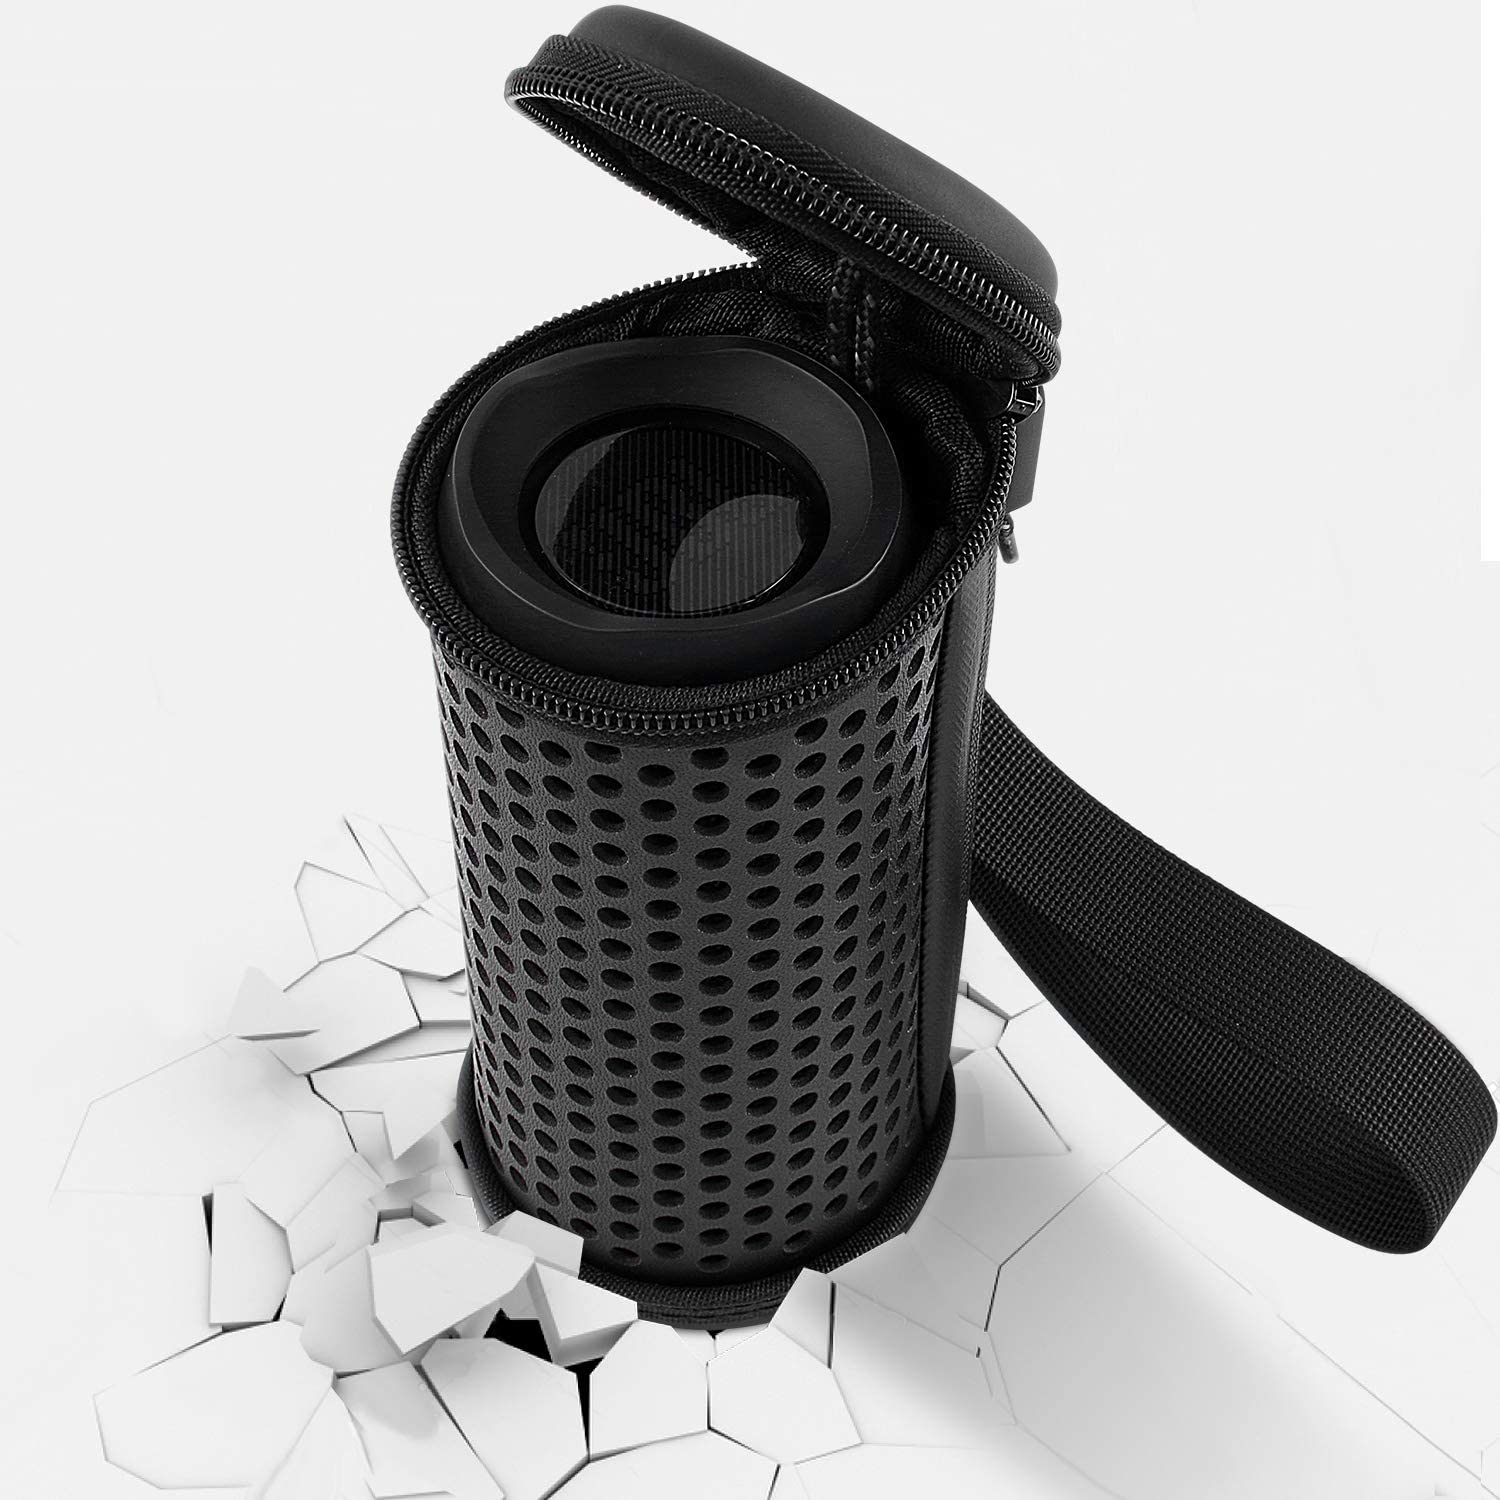 Travel Carrying PU Leather Cover Storage Bag with Hand Strap Protective Hard Case for JBL Flip 4 Waterproof Portable Bluetooth Speaker